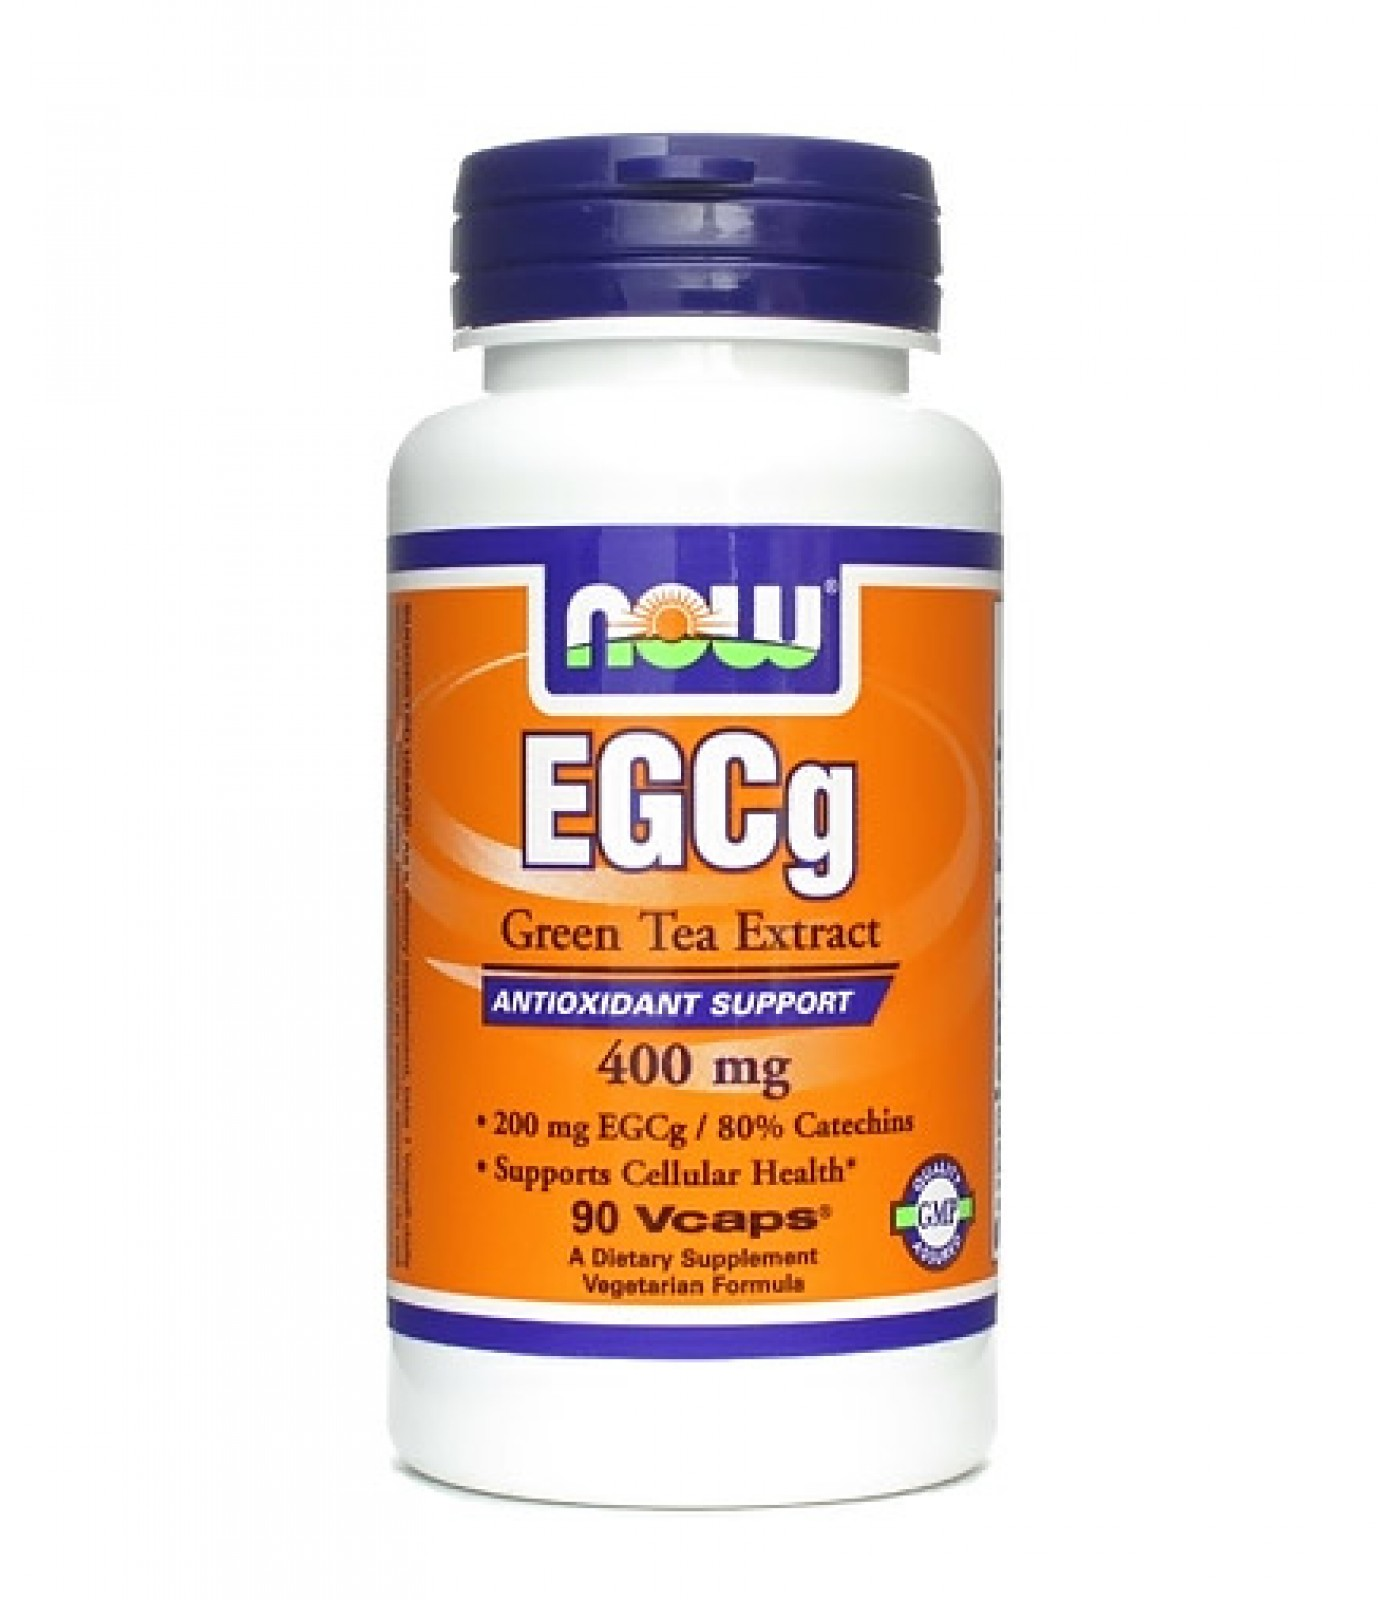 NOW - EGCG Green Tea Extract 400mg. / 90 Caps.